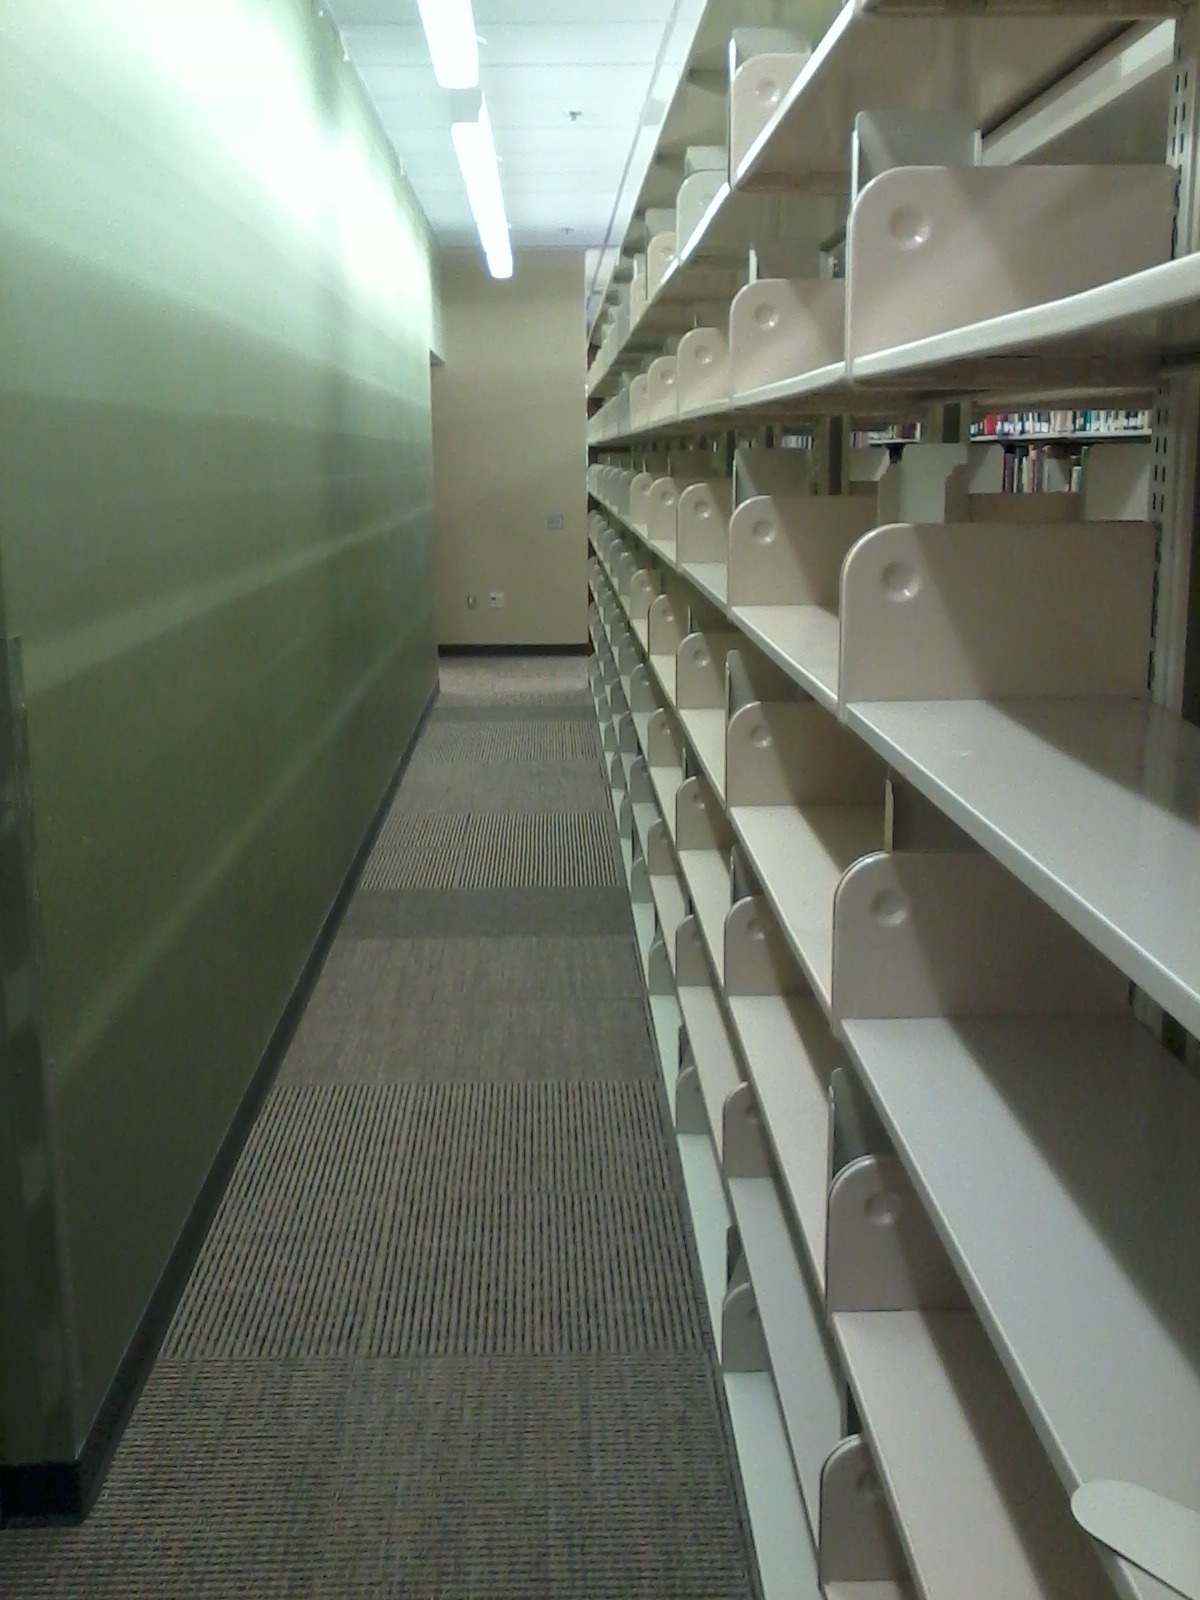 Empty shelves in a library